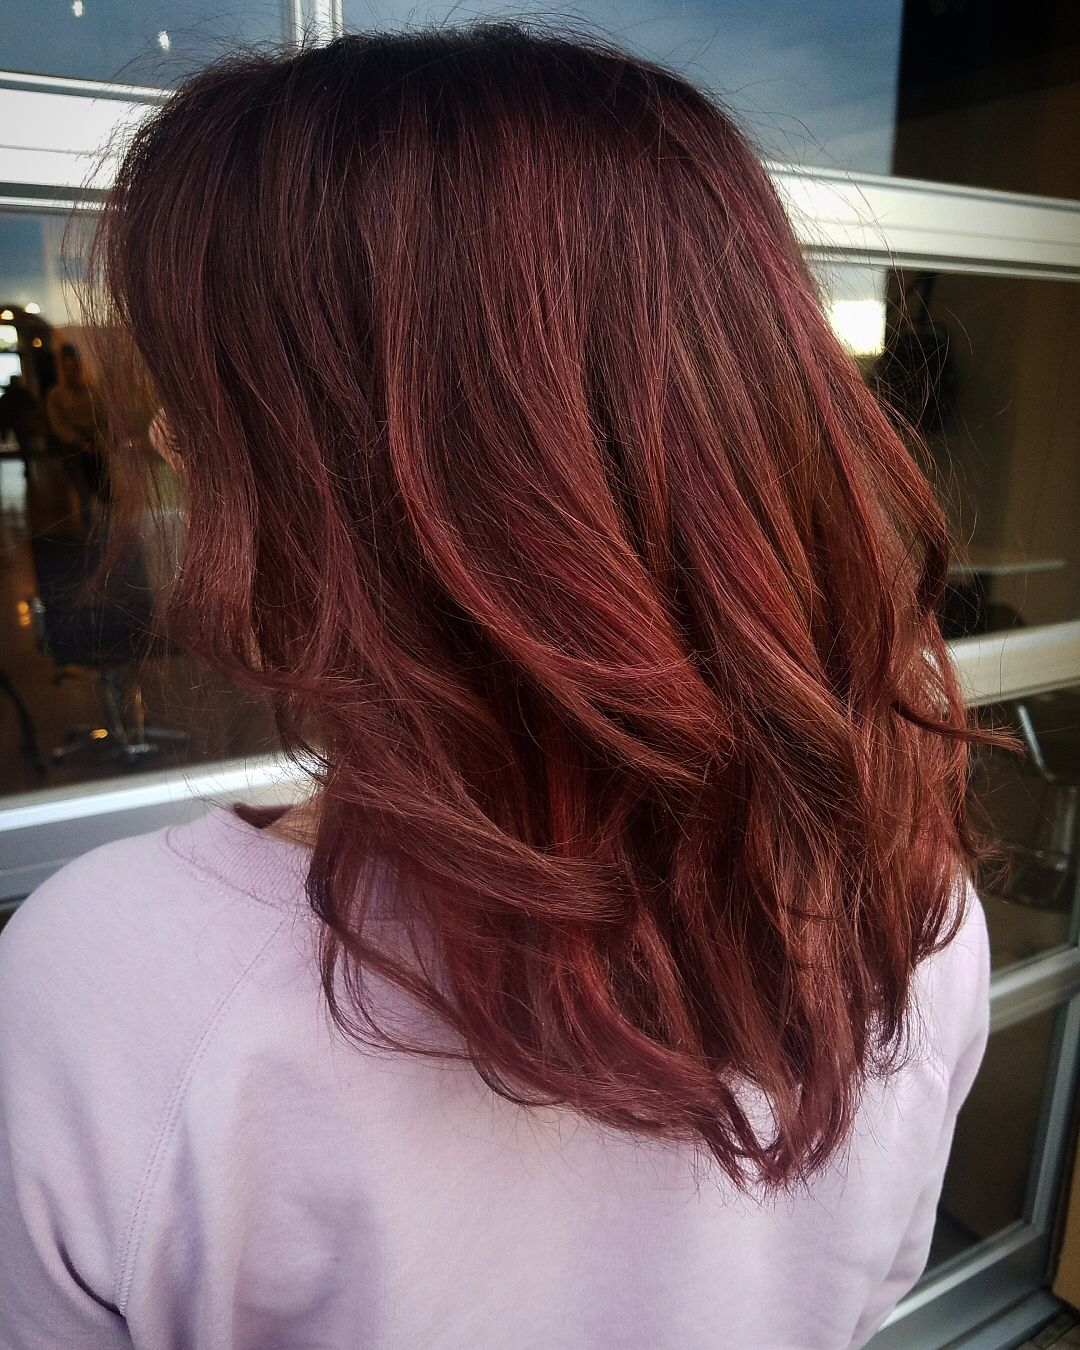 40+ stunning red hairstyles for women - page 24 of 45 | red